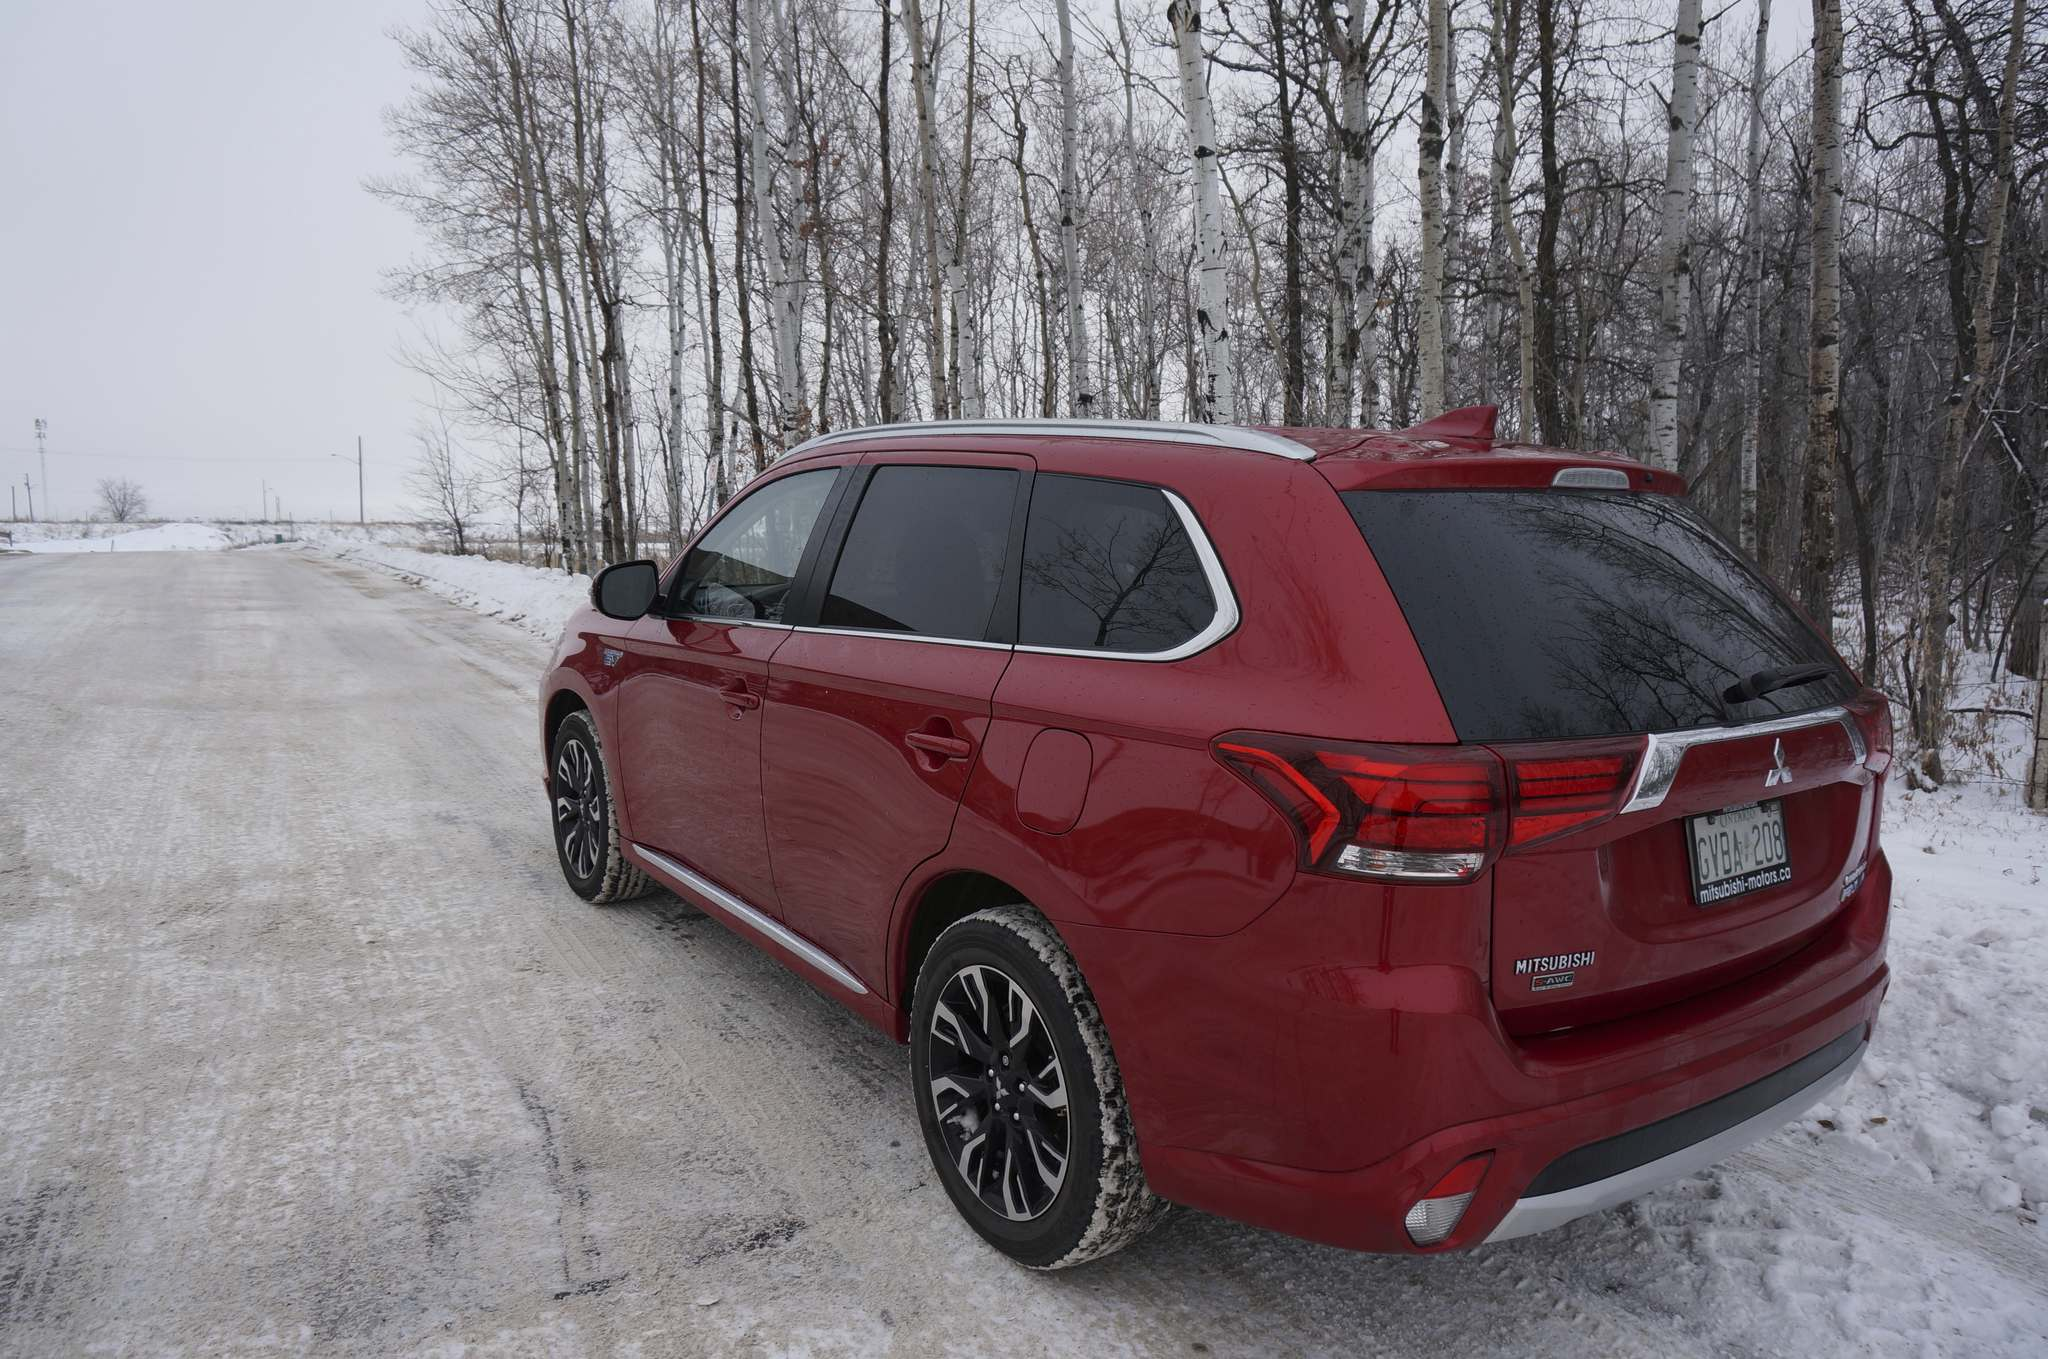 Photos by Haney Louka / Winnipeg Free PressDriving in winter conditions forces the Outlander PHEV to rely more on its gasoline engine, resulting in a clear increase in fuel consumption.